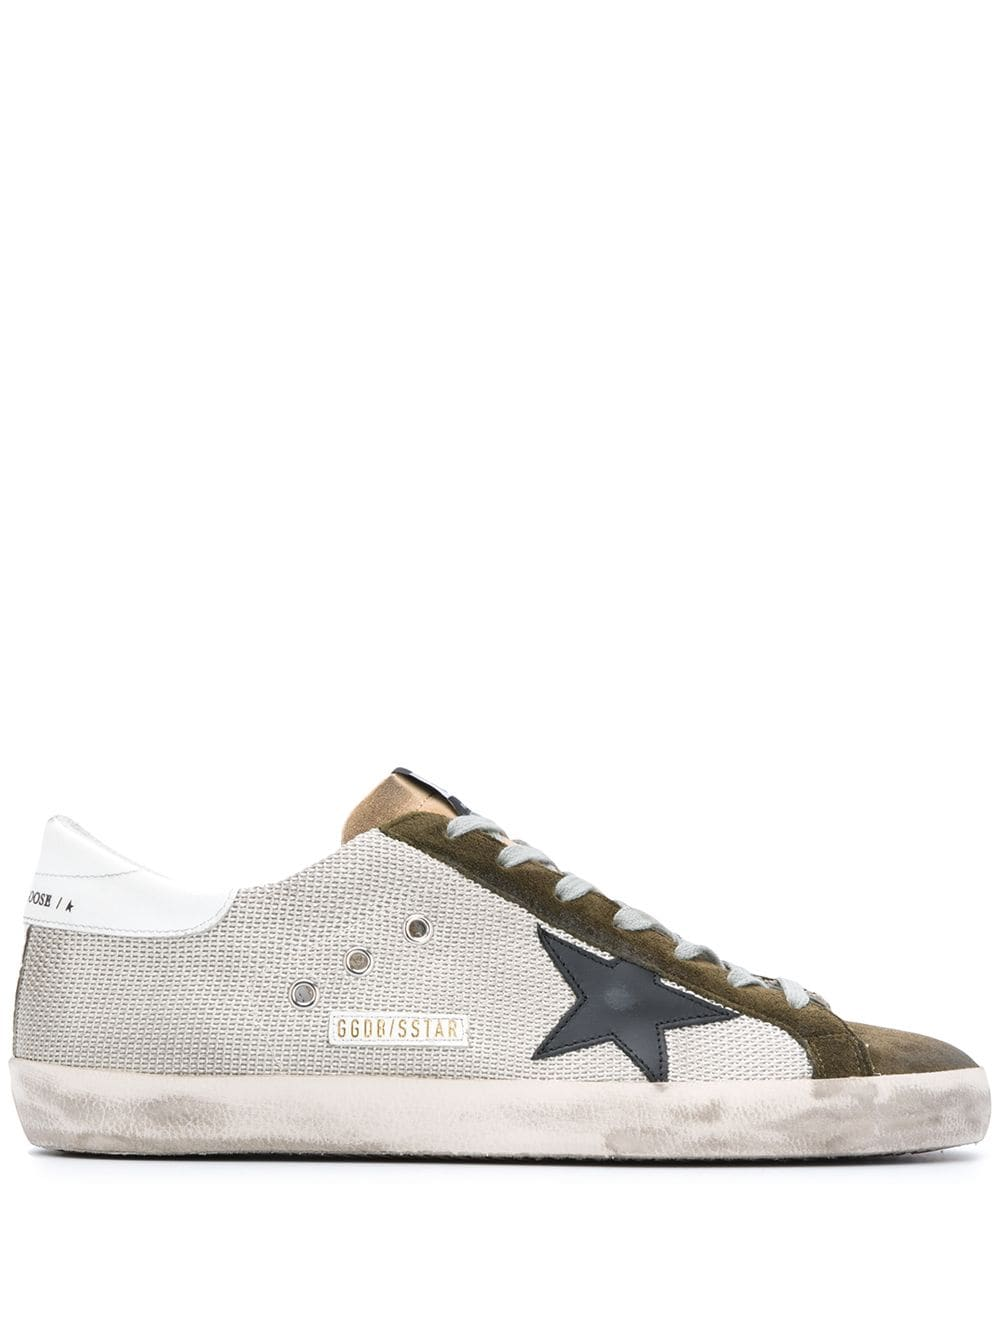 Men's Suede Lace Up Trainers With Star Detail